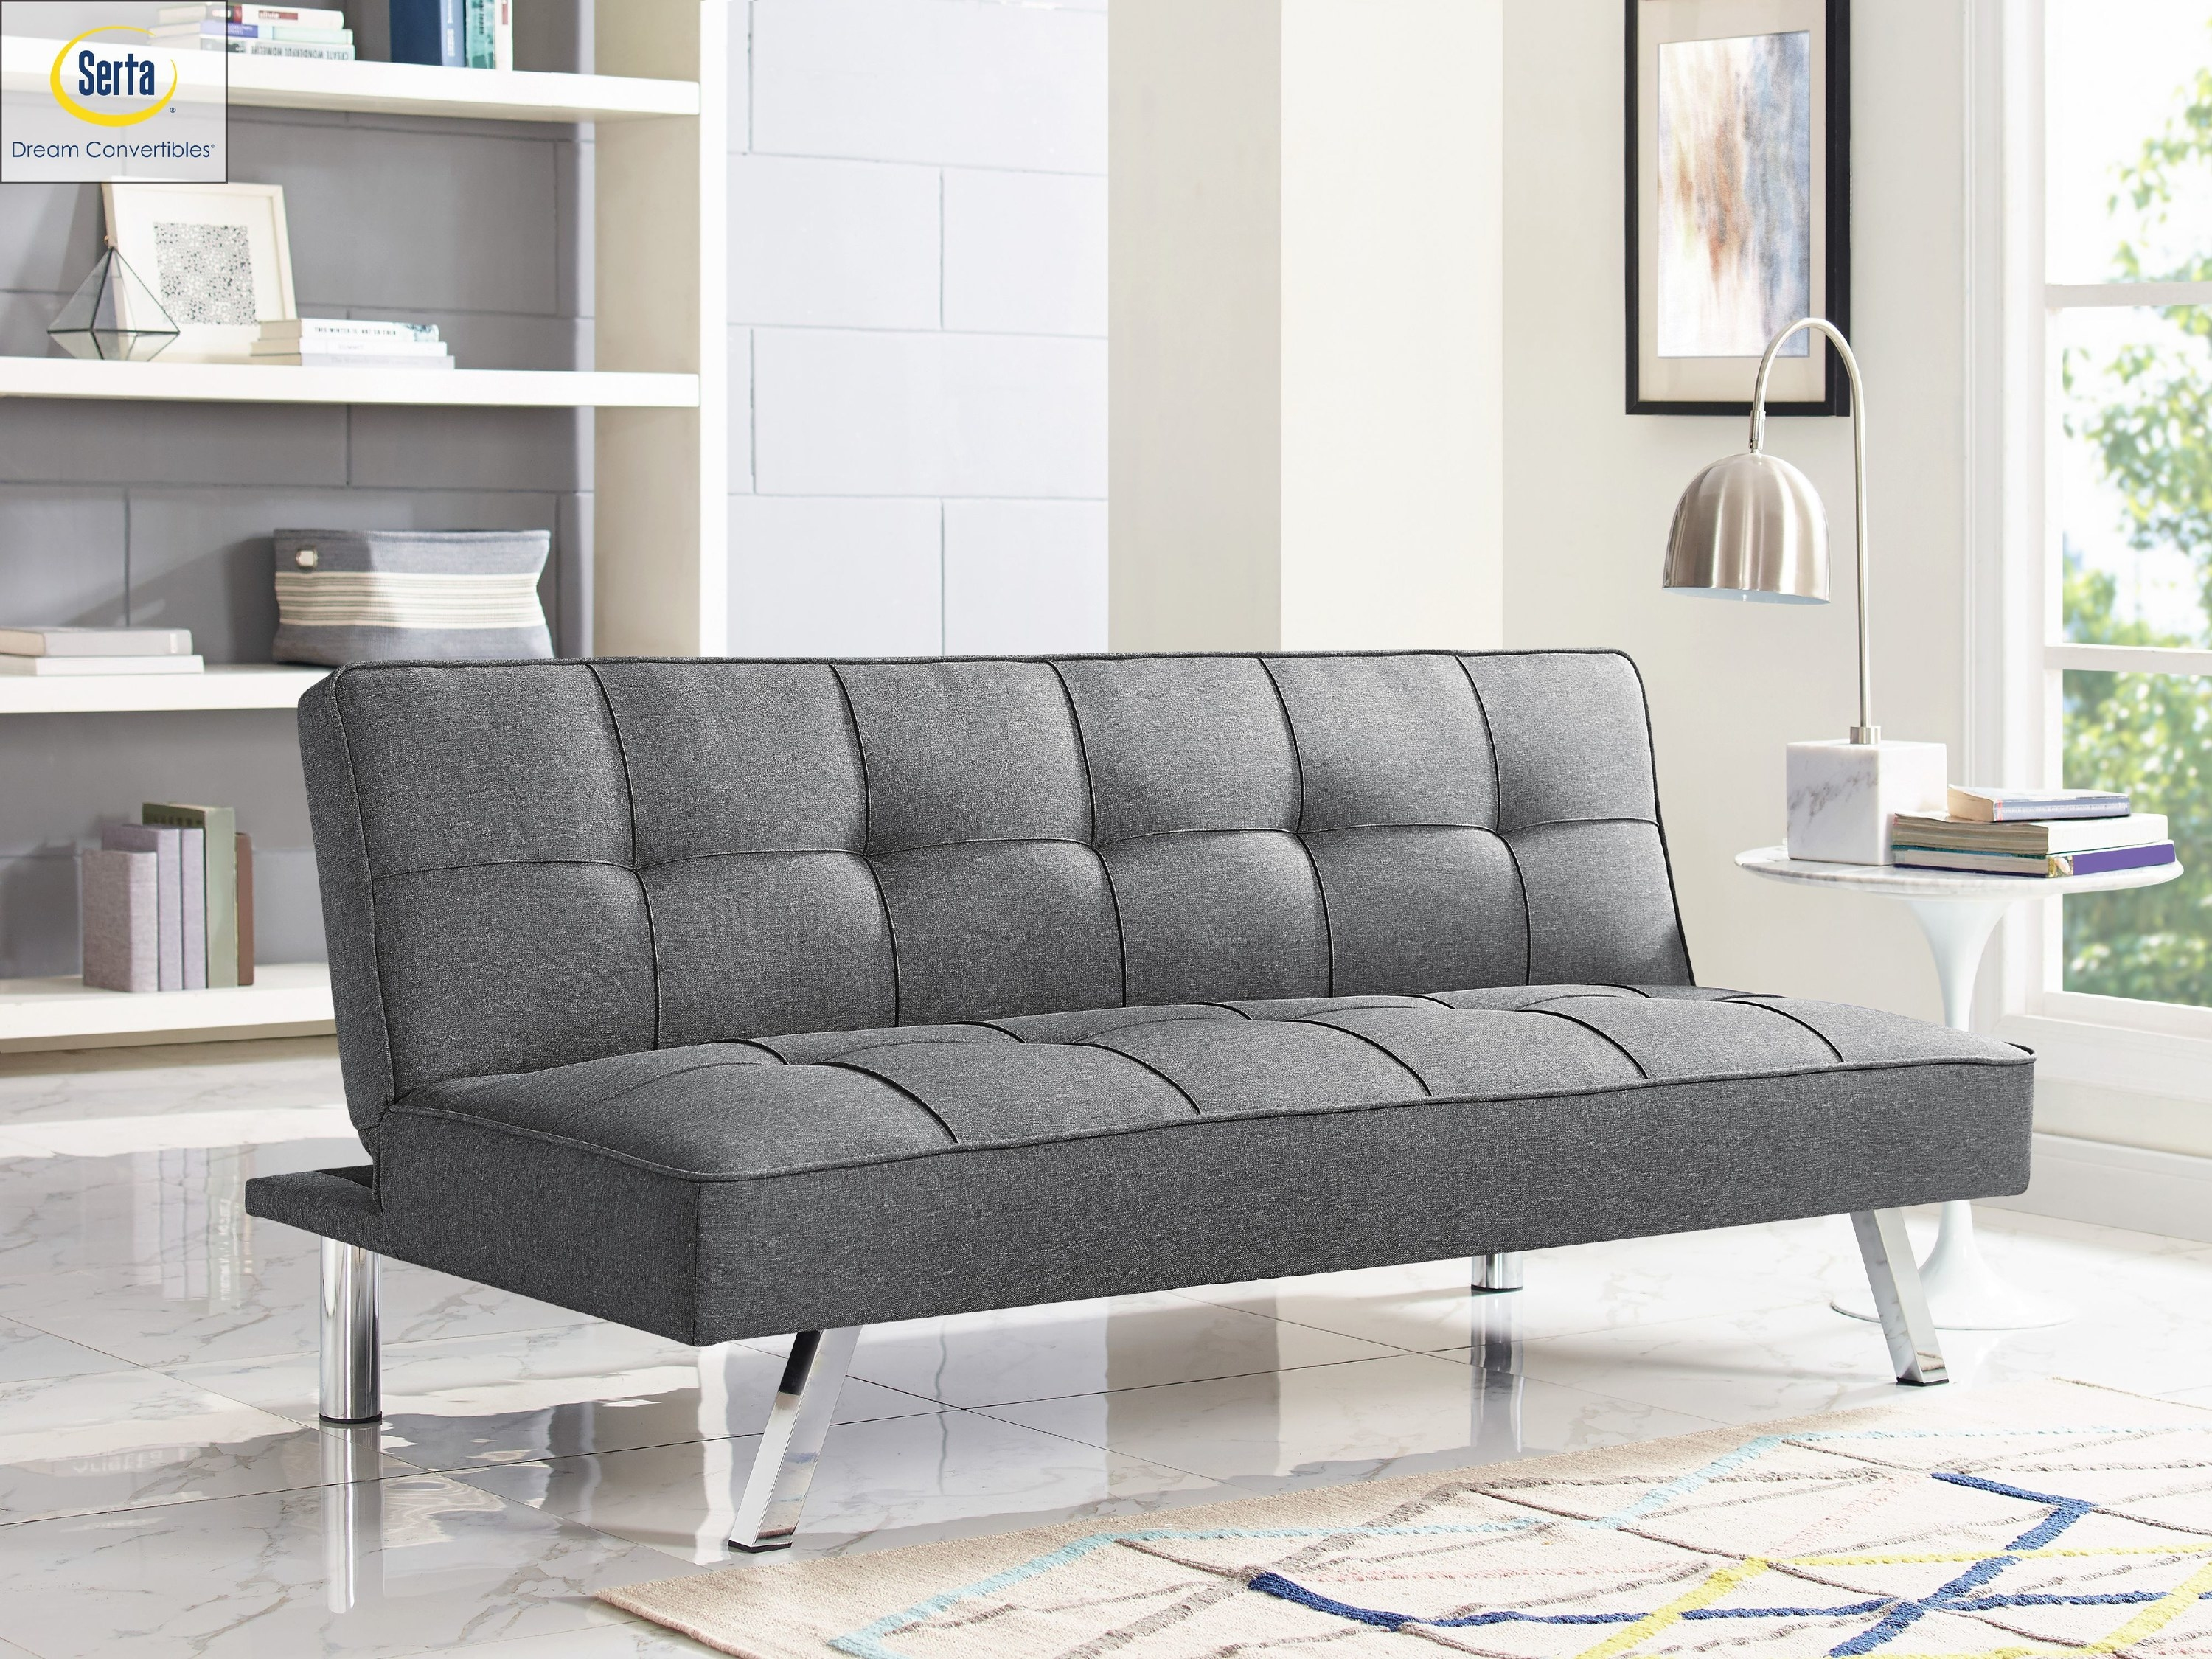 The quilted grey fabric futon